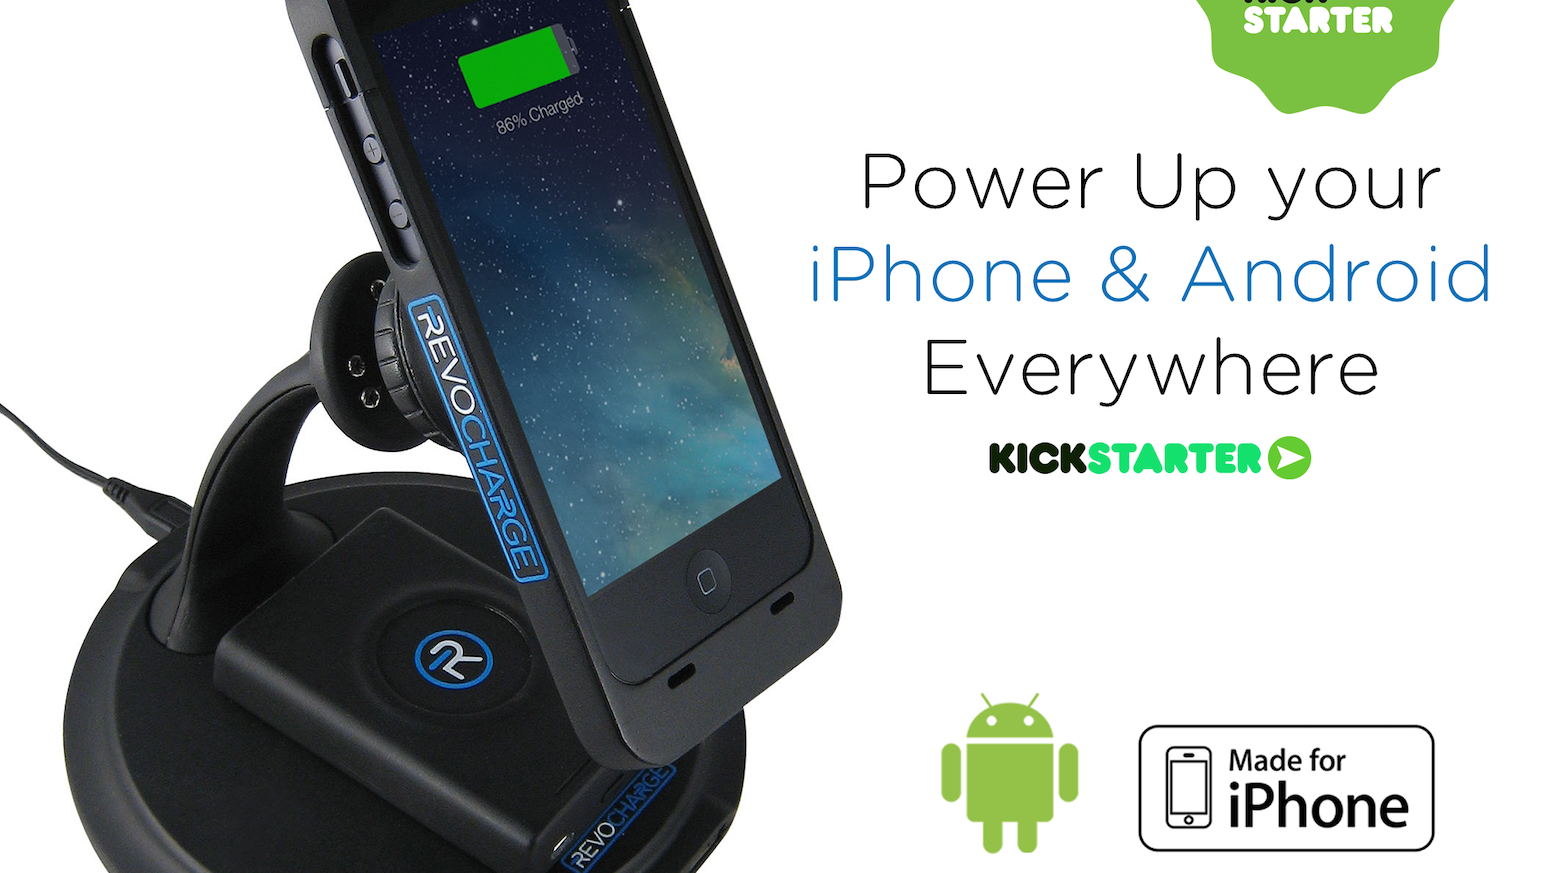 Revocharge is the smartest way to charge your iPhone and Android on the go. Snap on a magnetic battery Full power, everywhere, anytime.